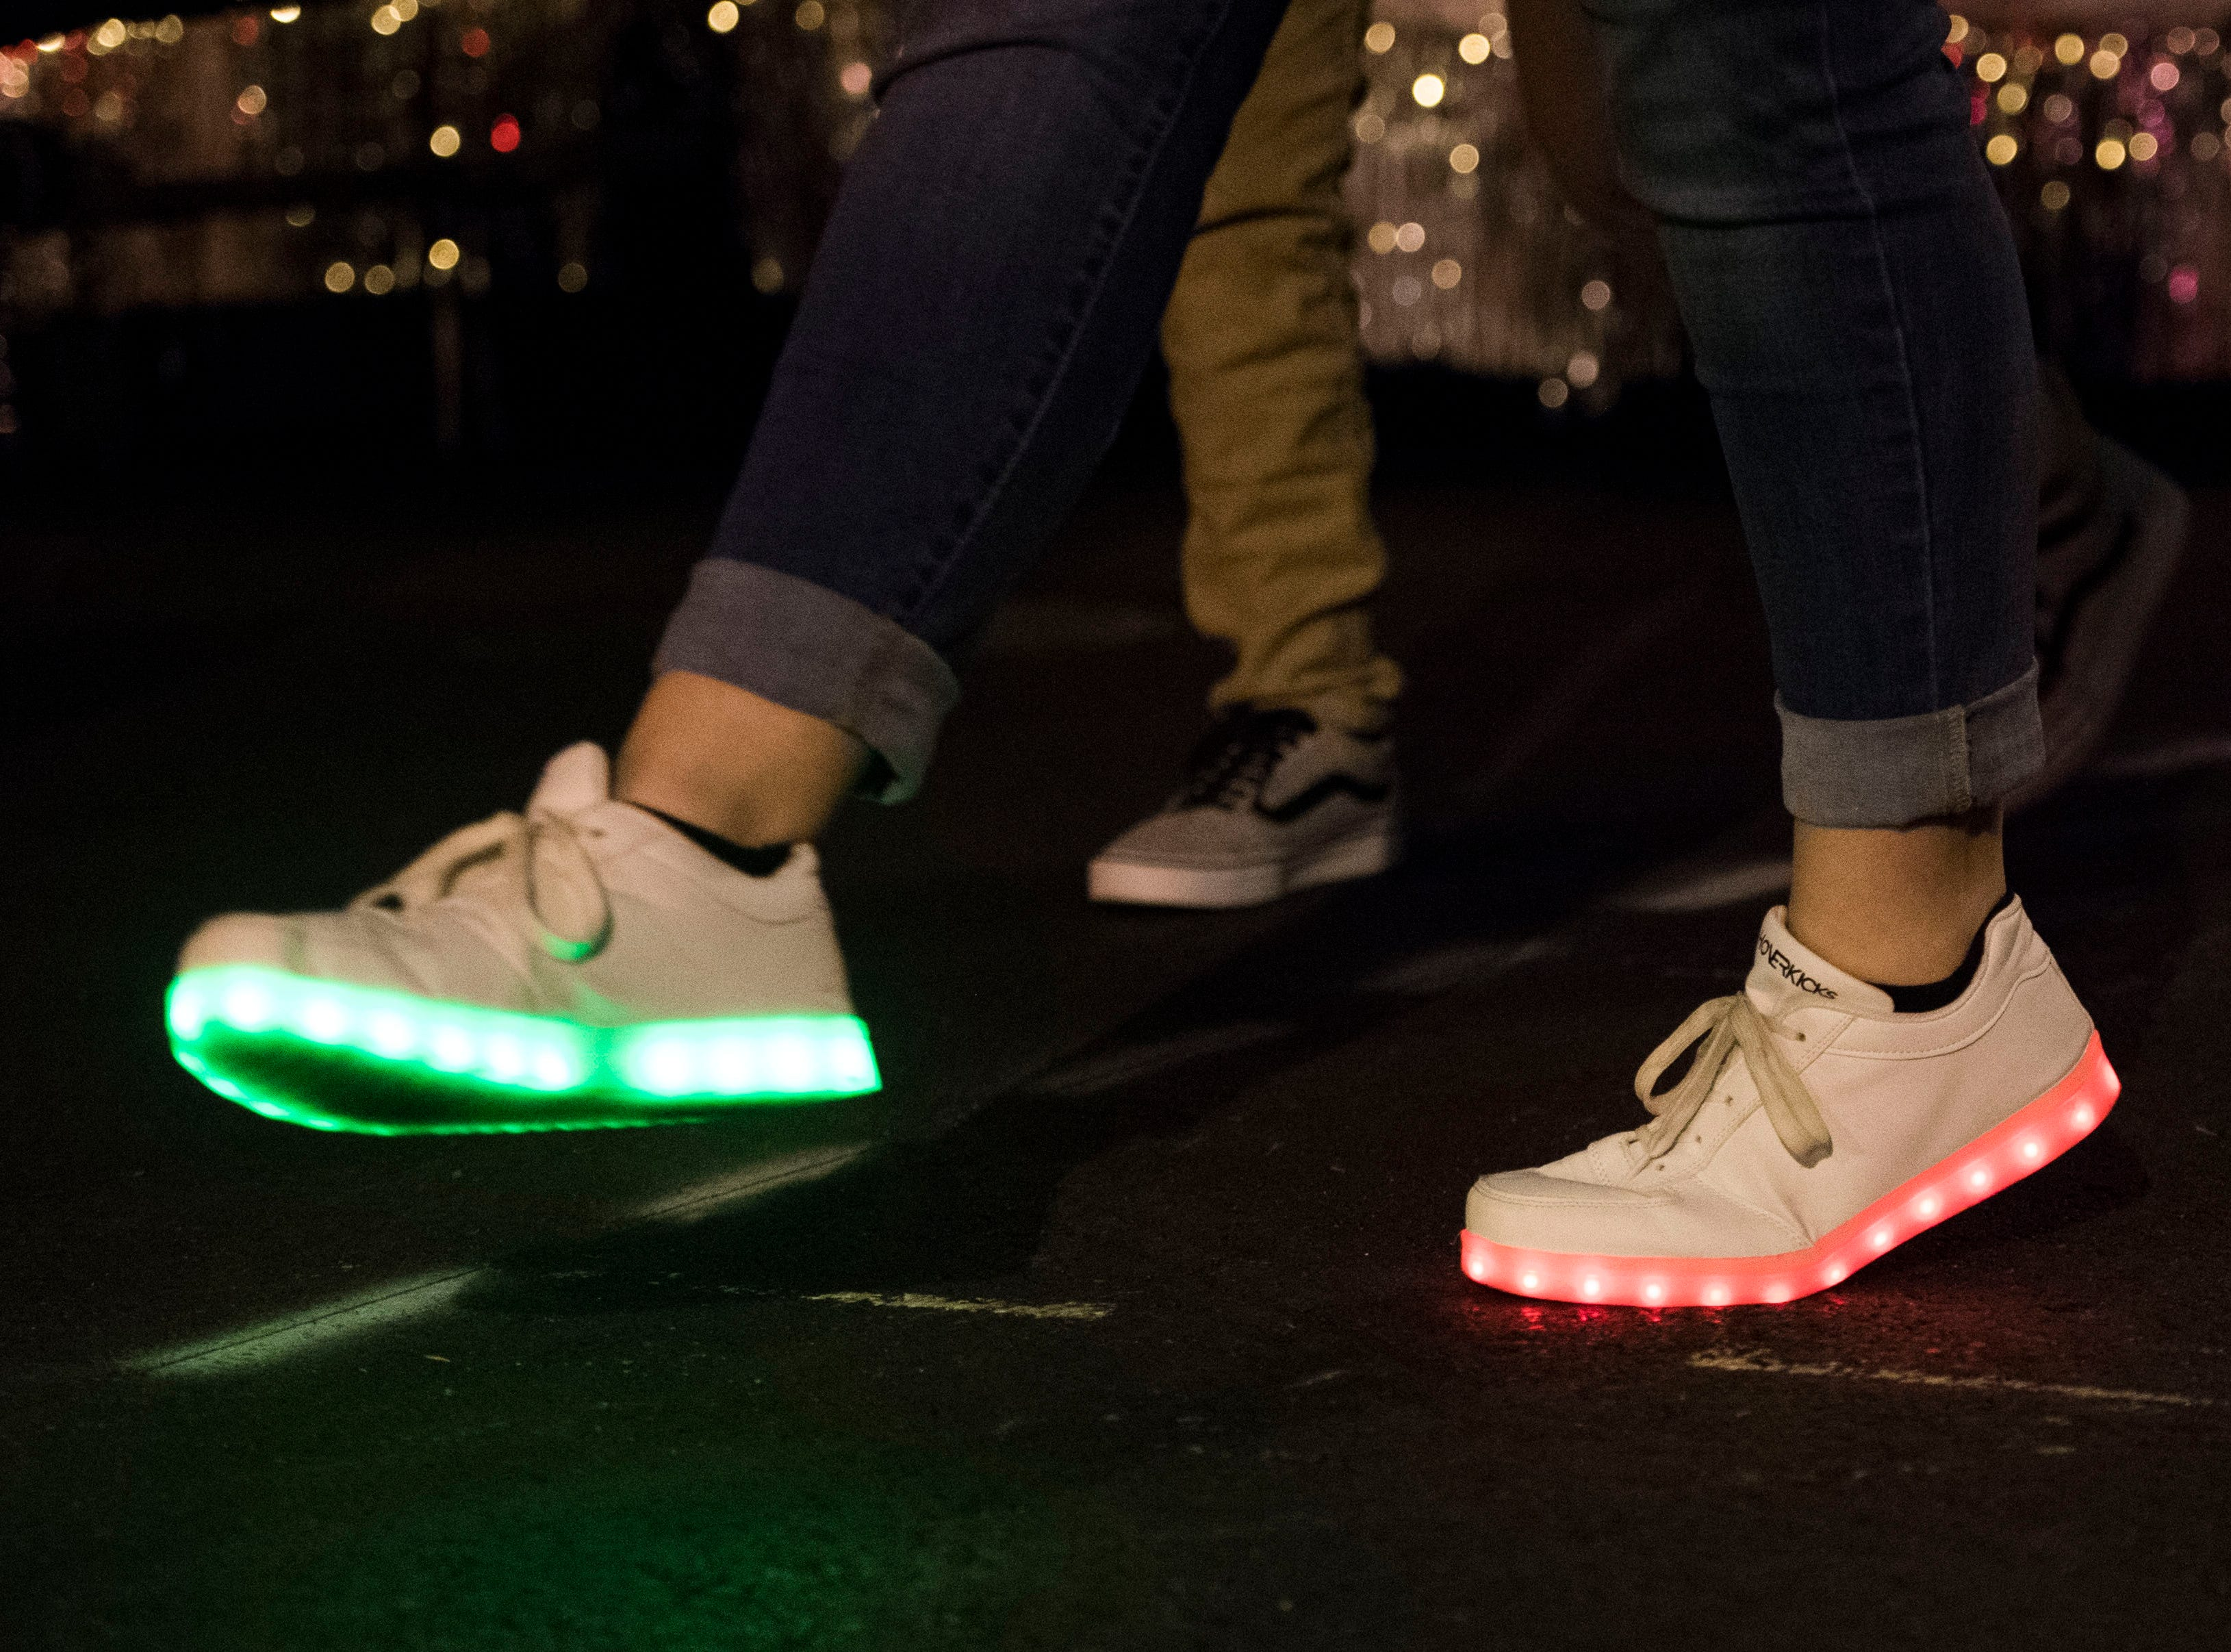 A parade marcher walks with light up shoes during the annual WIVK Christmas Parade in downtown Knoxville Friday, Dec. 7, 2018.